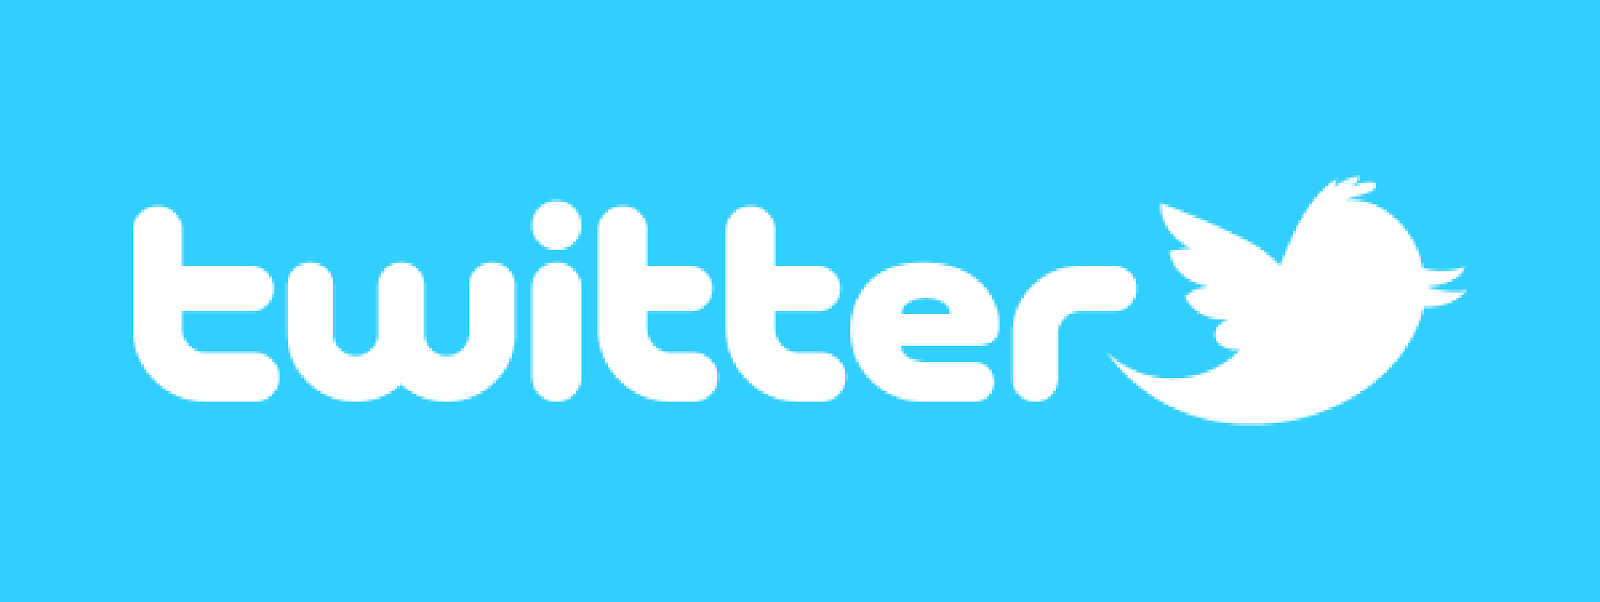 Learn how to make money on twitter without investment